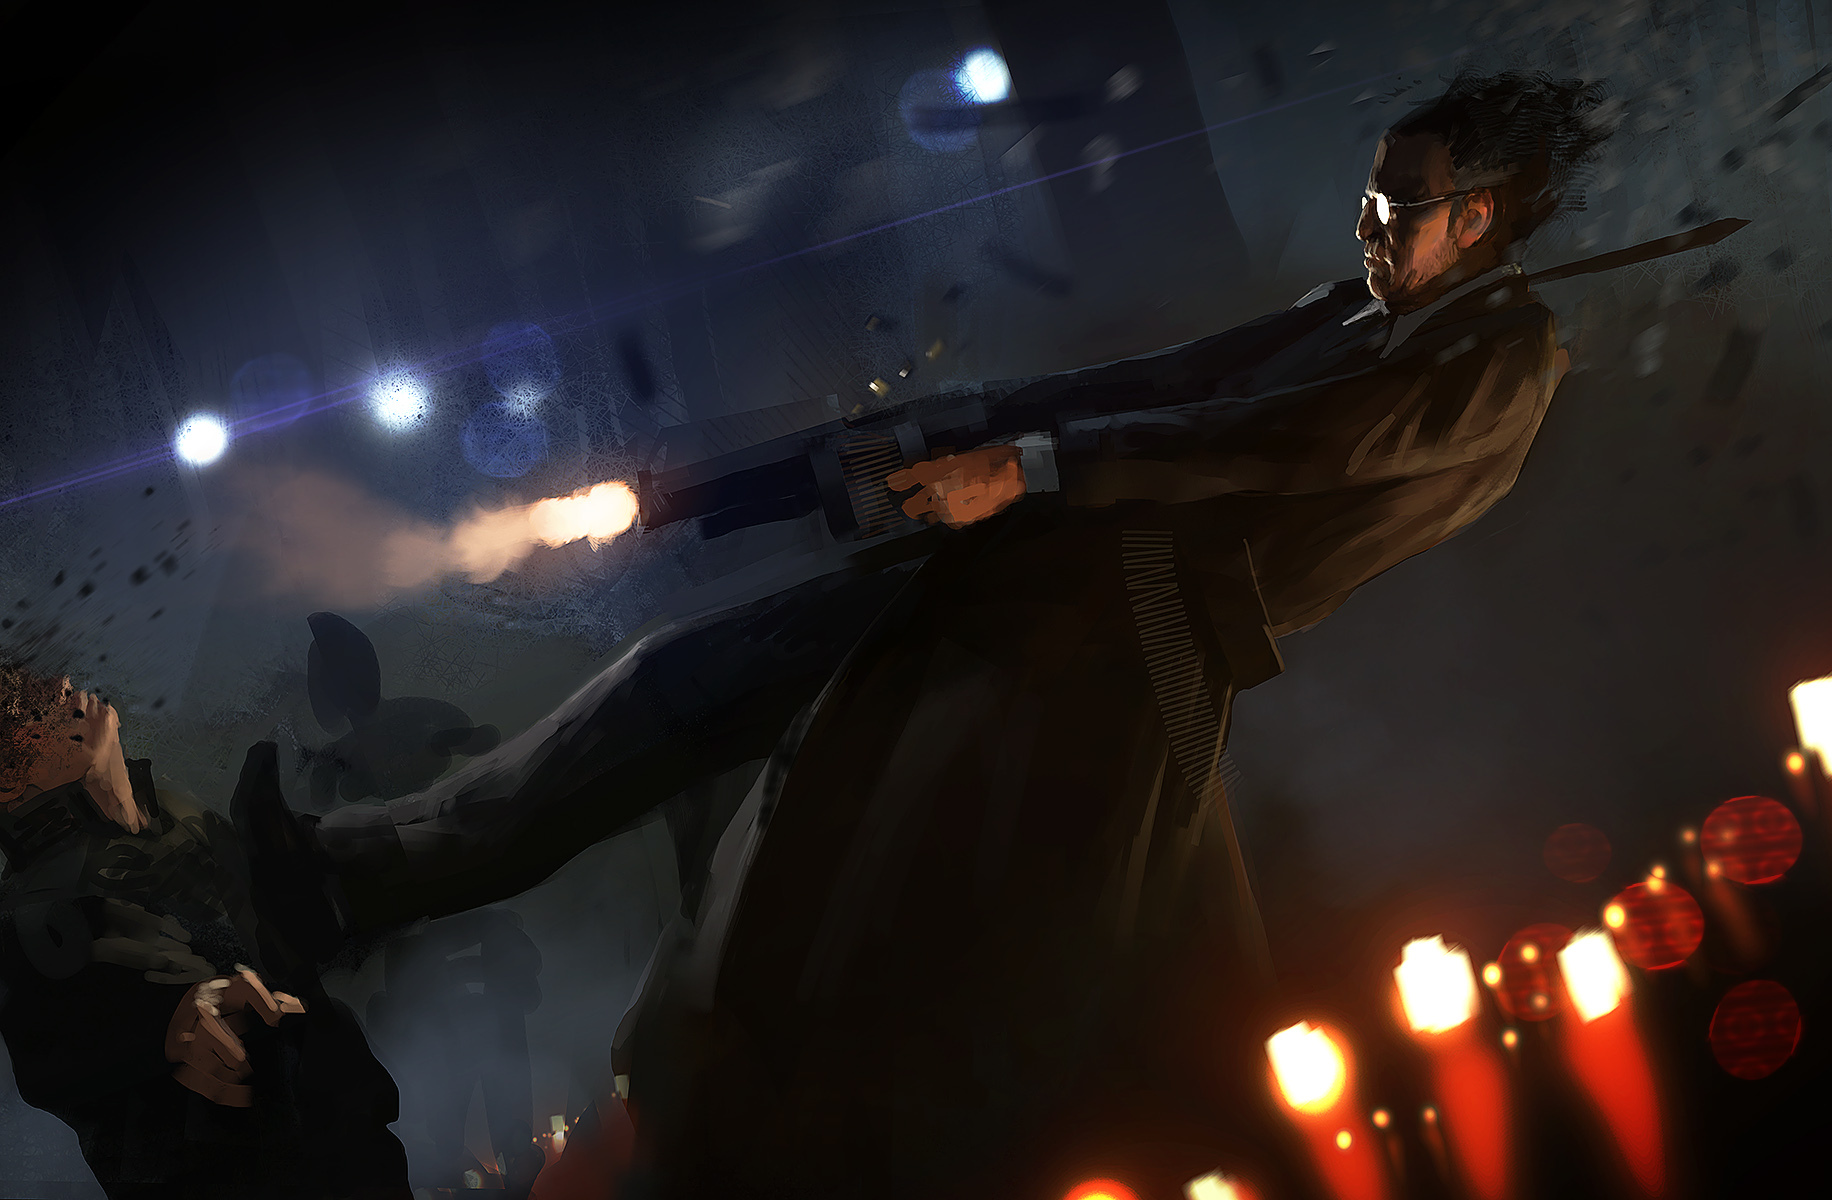 The studio posted the first concept art of their upcoming hitman game